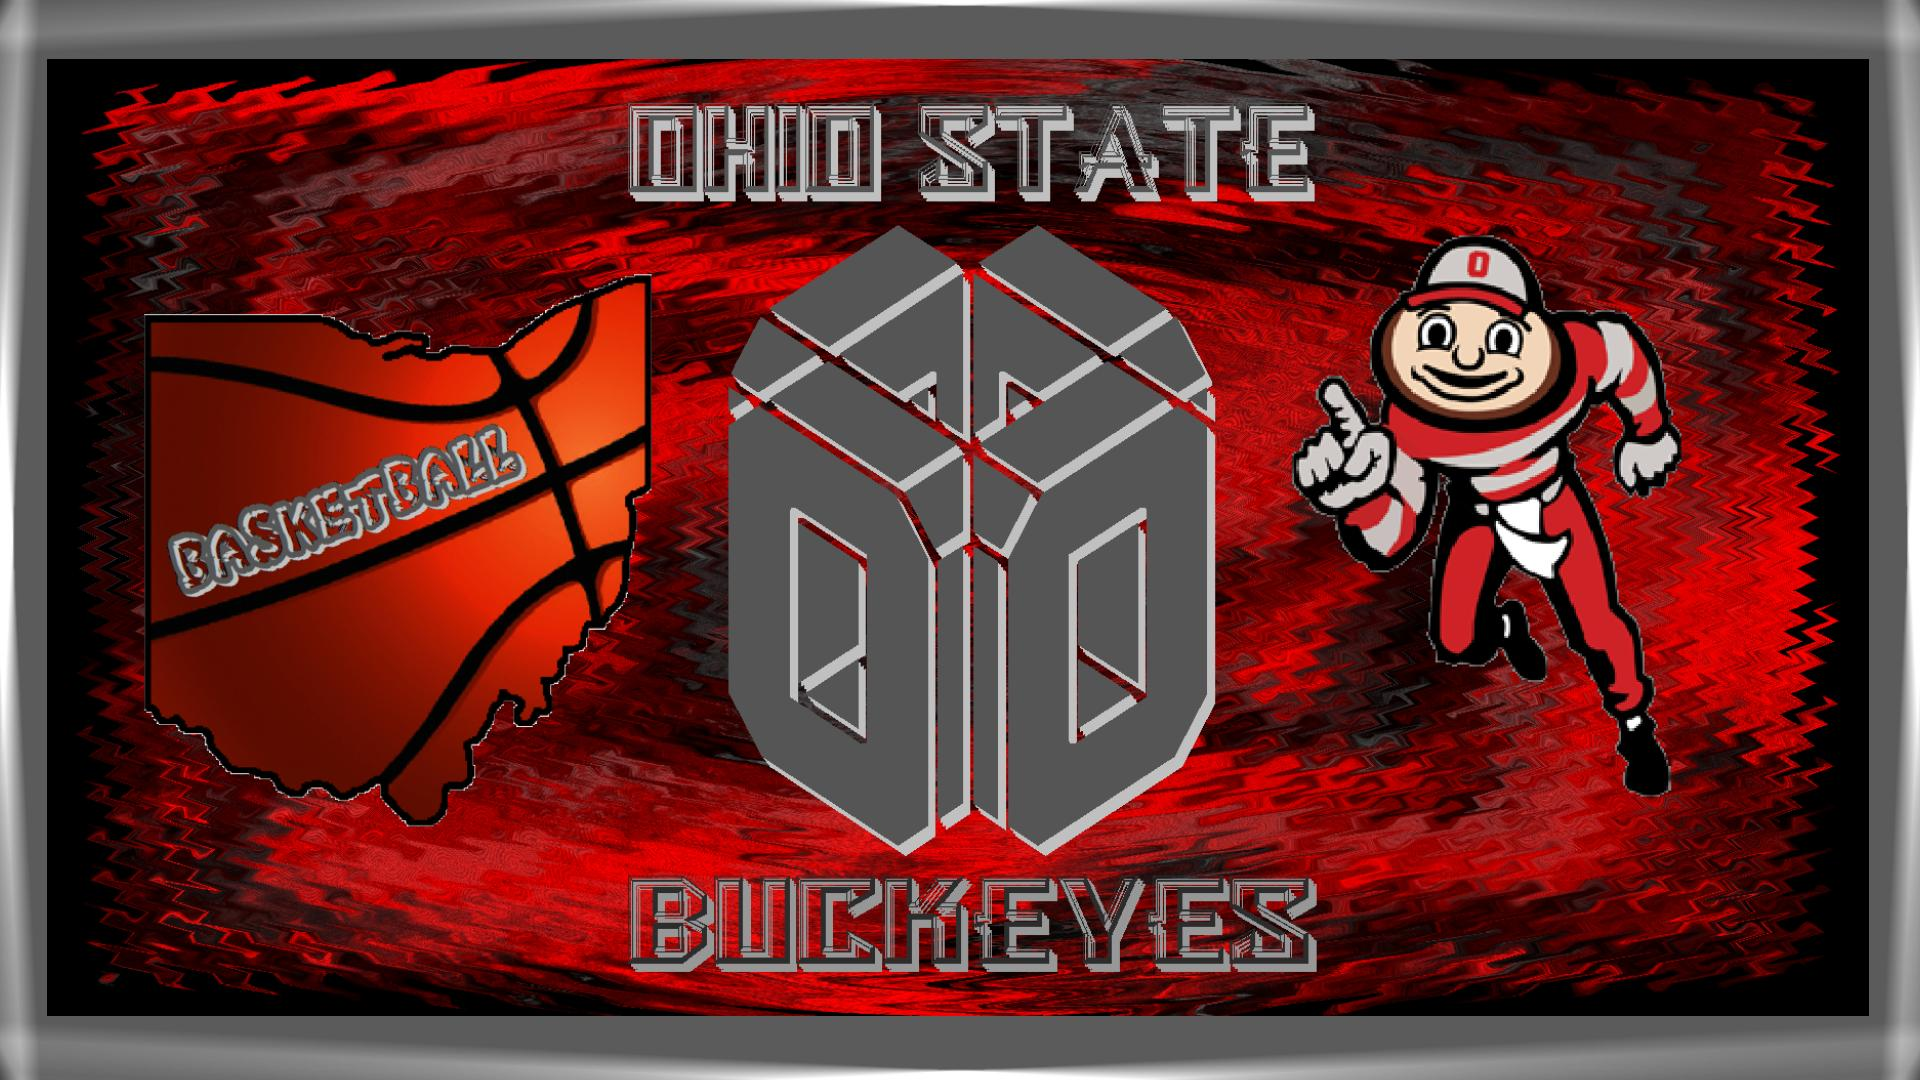 OHIO STATE BUCKEYES BASKETBALL WALLPAPER   Ohio State University 1920x1080